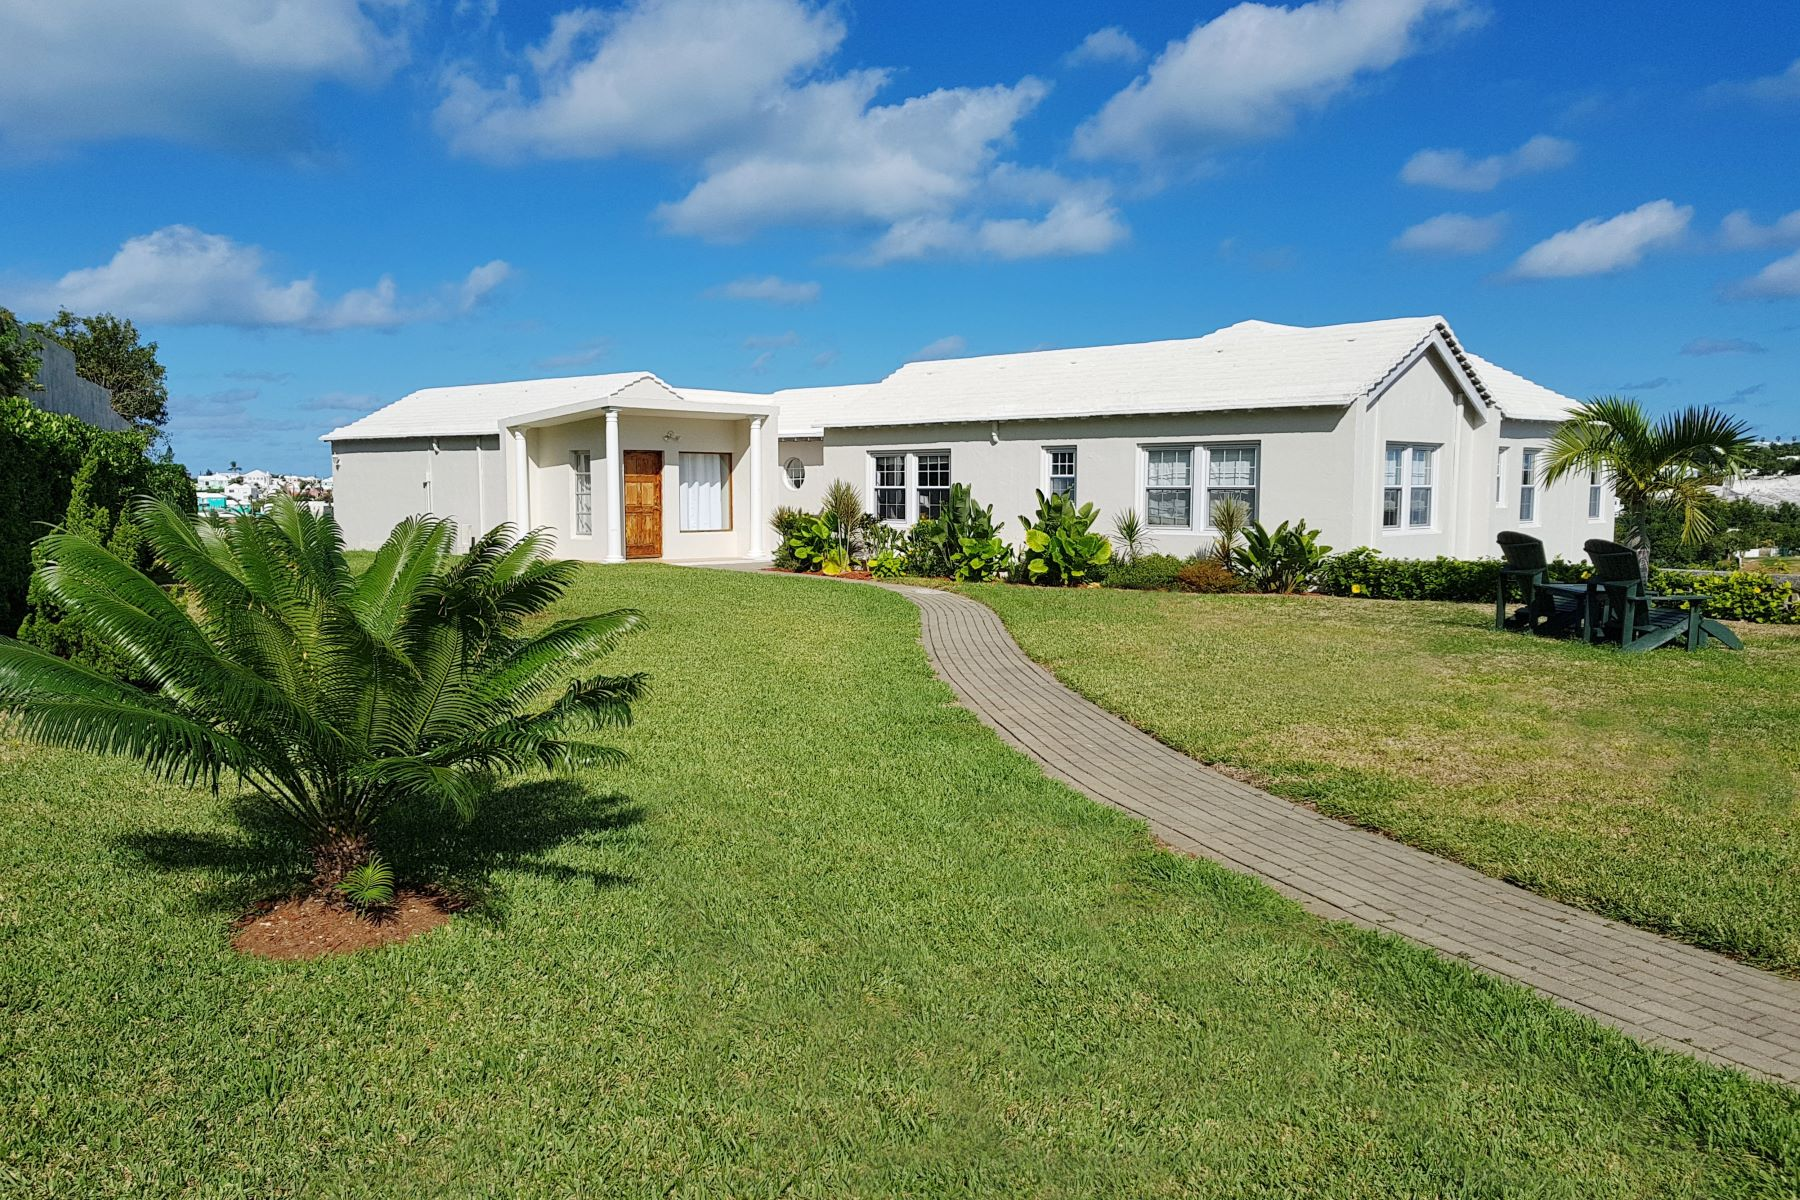 Single Family Homes for Sale at Moondance 6 Windcrest Drive Paget, Other Areas In Bermuda PG 05 Bermuda